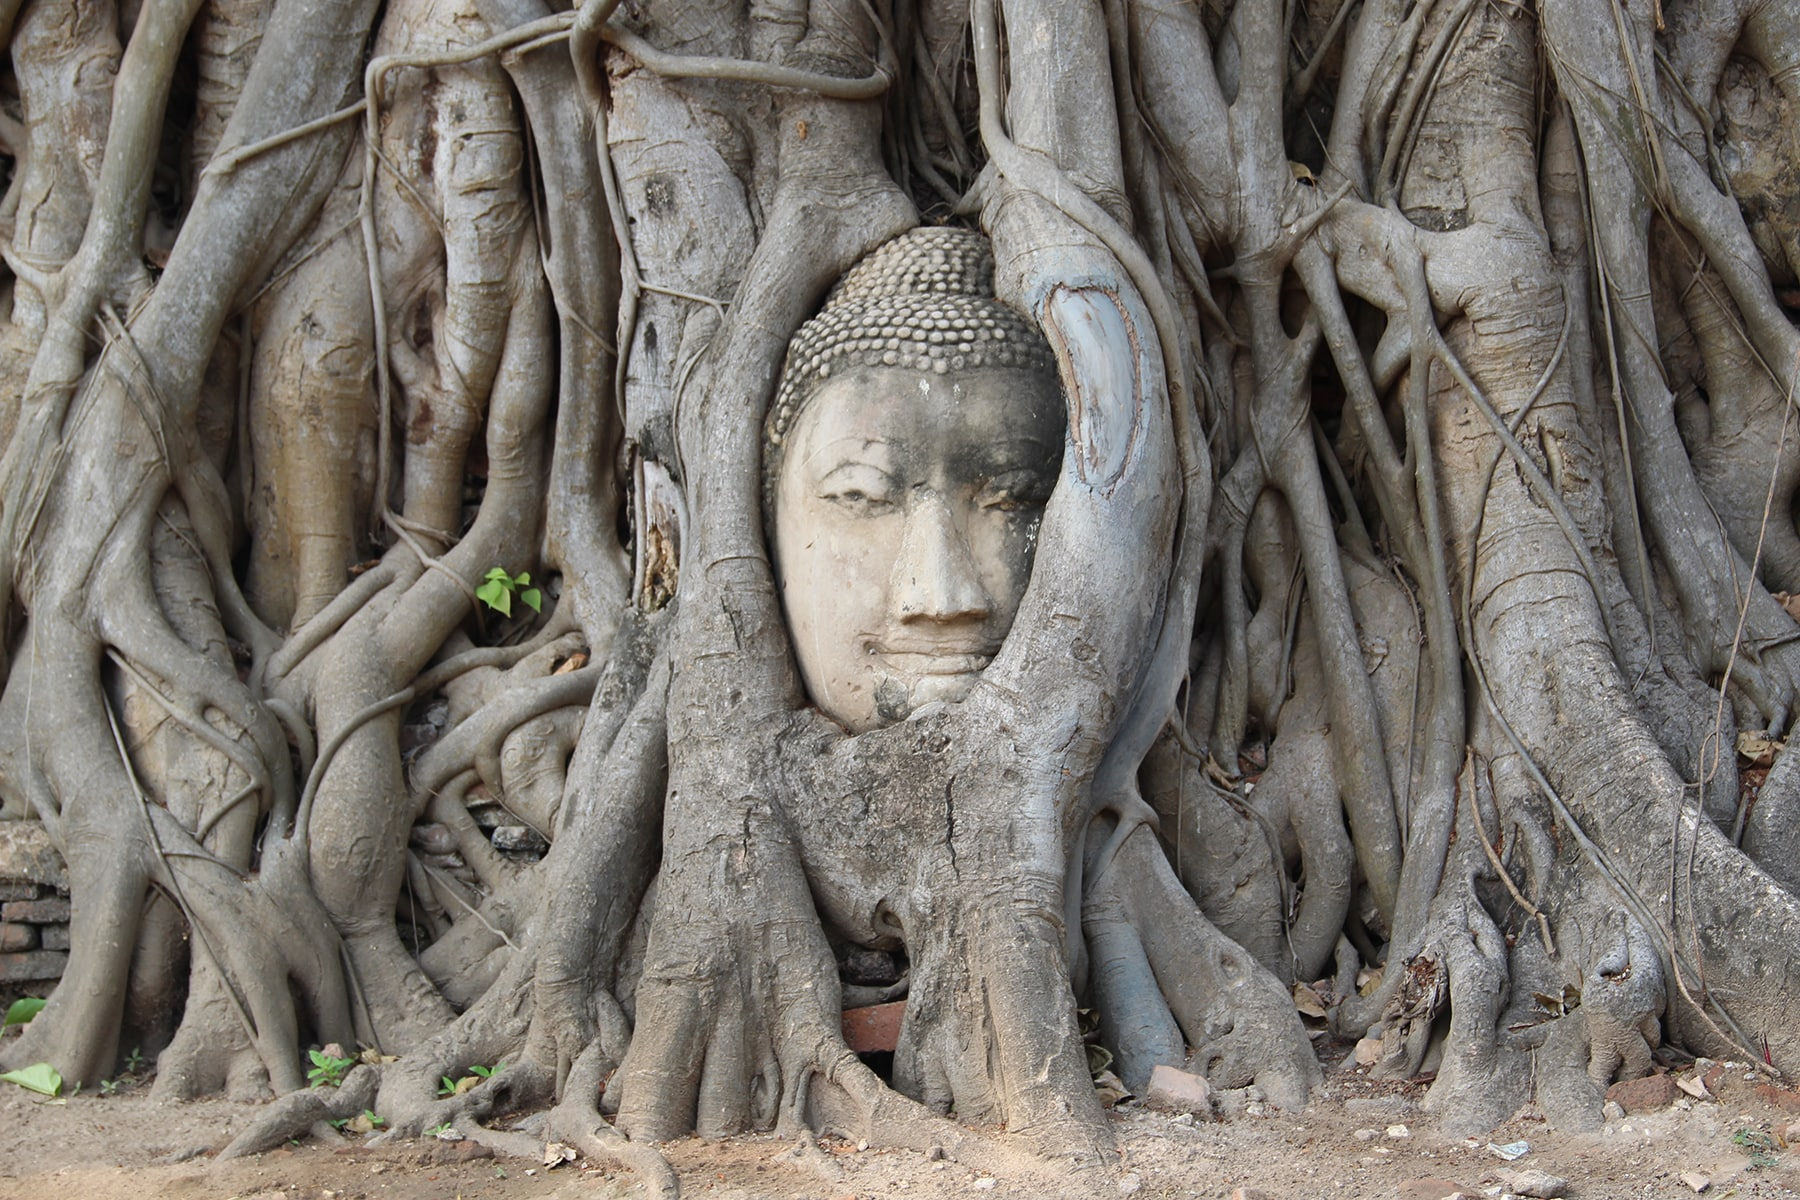 Buddha intertwined in tree roots in Wat Mahathat in Ayutthaya